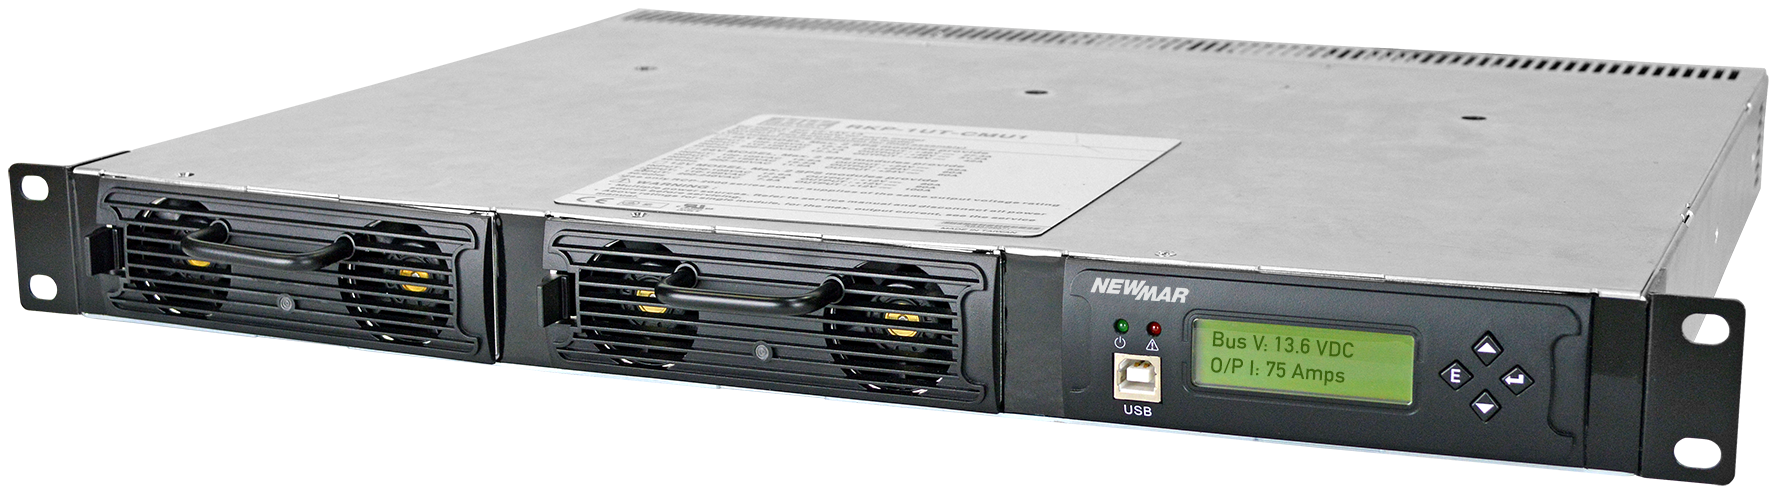 12V DC | 95 Amp to 200 Amp | 1,140 Watts - 2,400 Watts | Scout Rackmount DC  Power System | N+1 Redundant Rectifier Shelf | Newmar Powering the Network